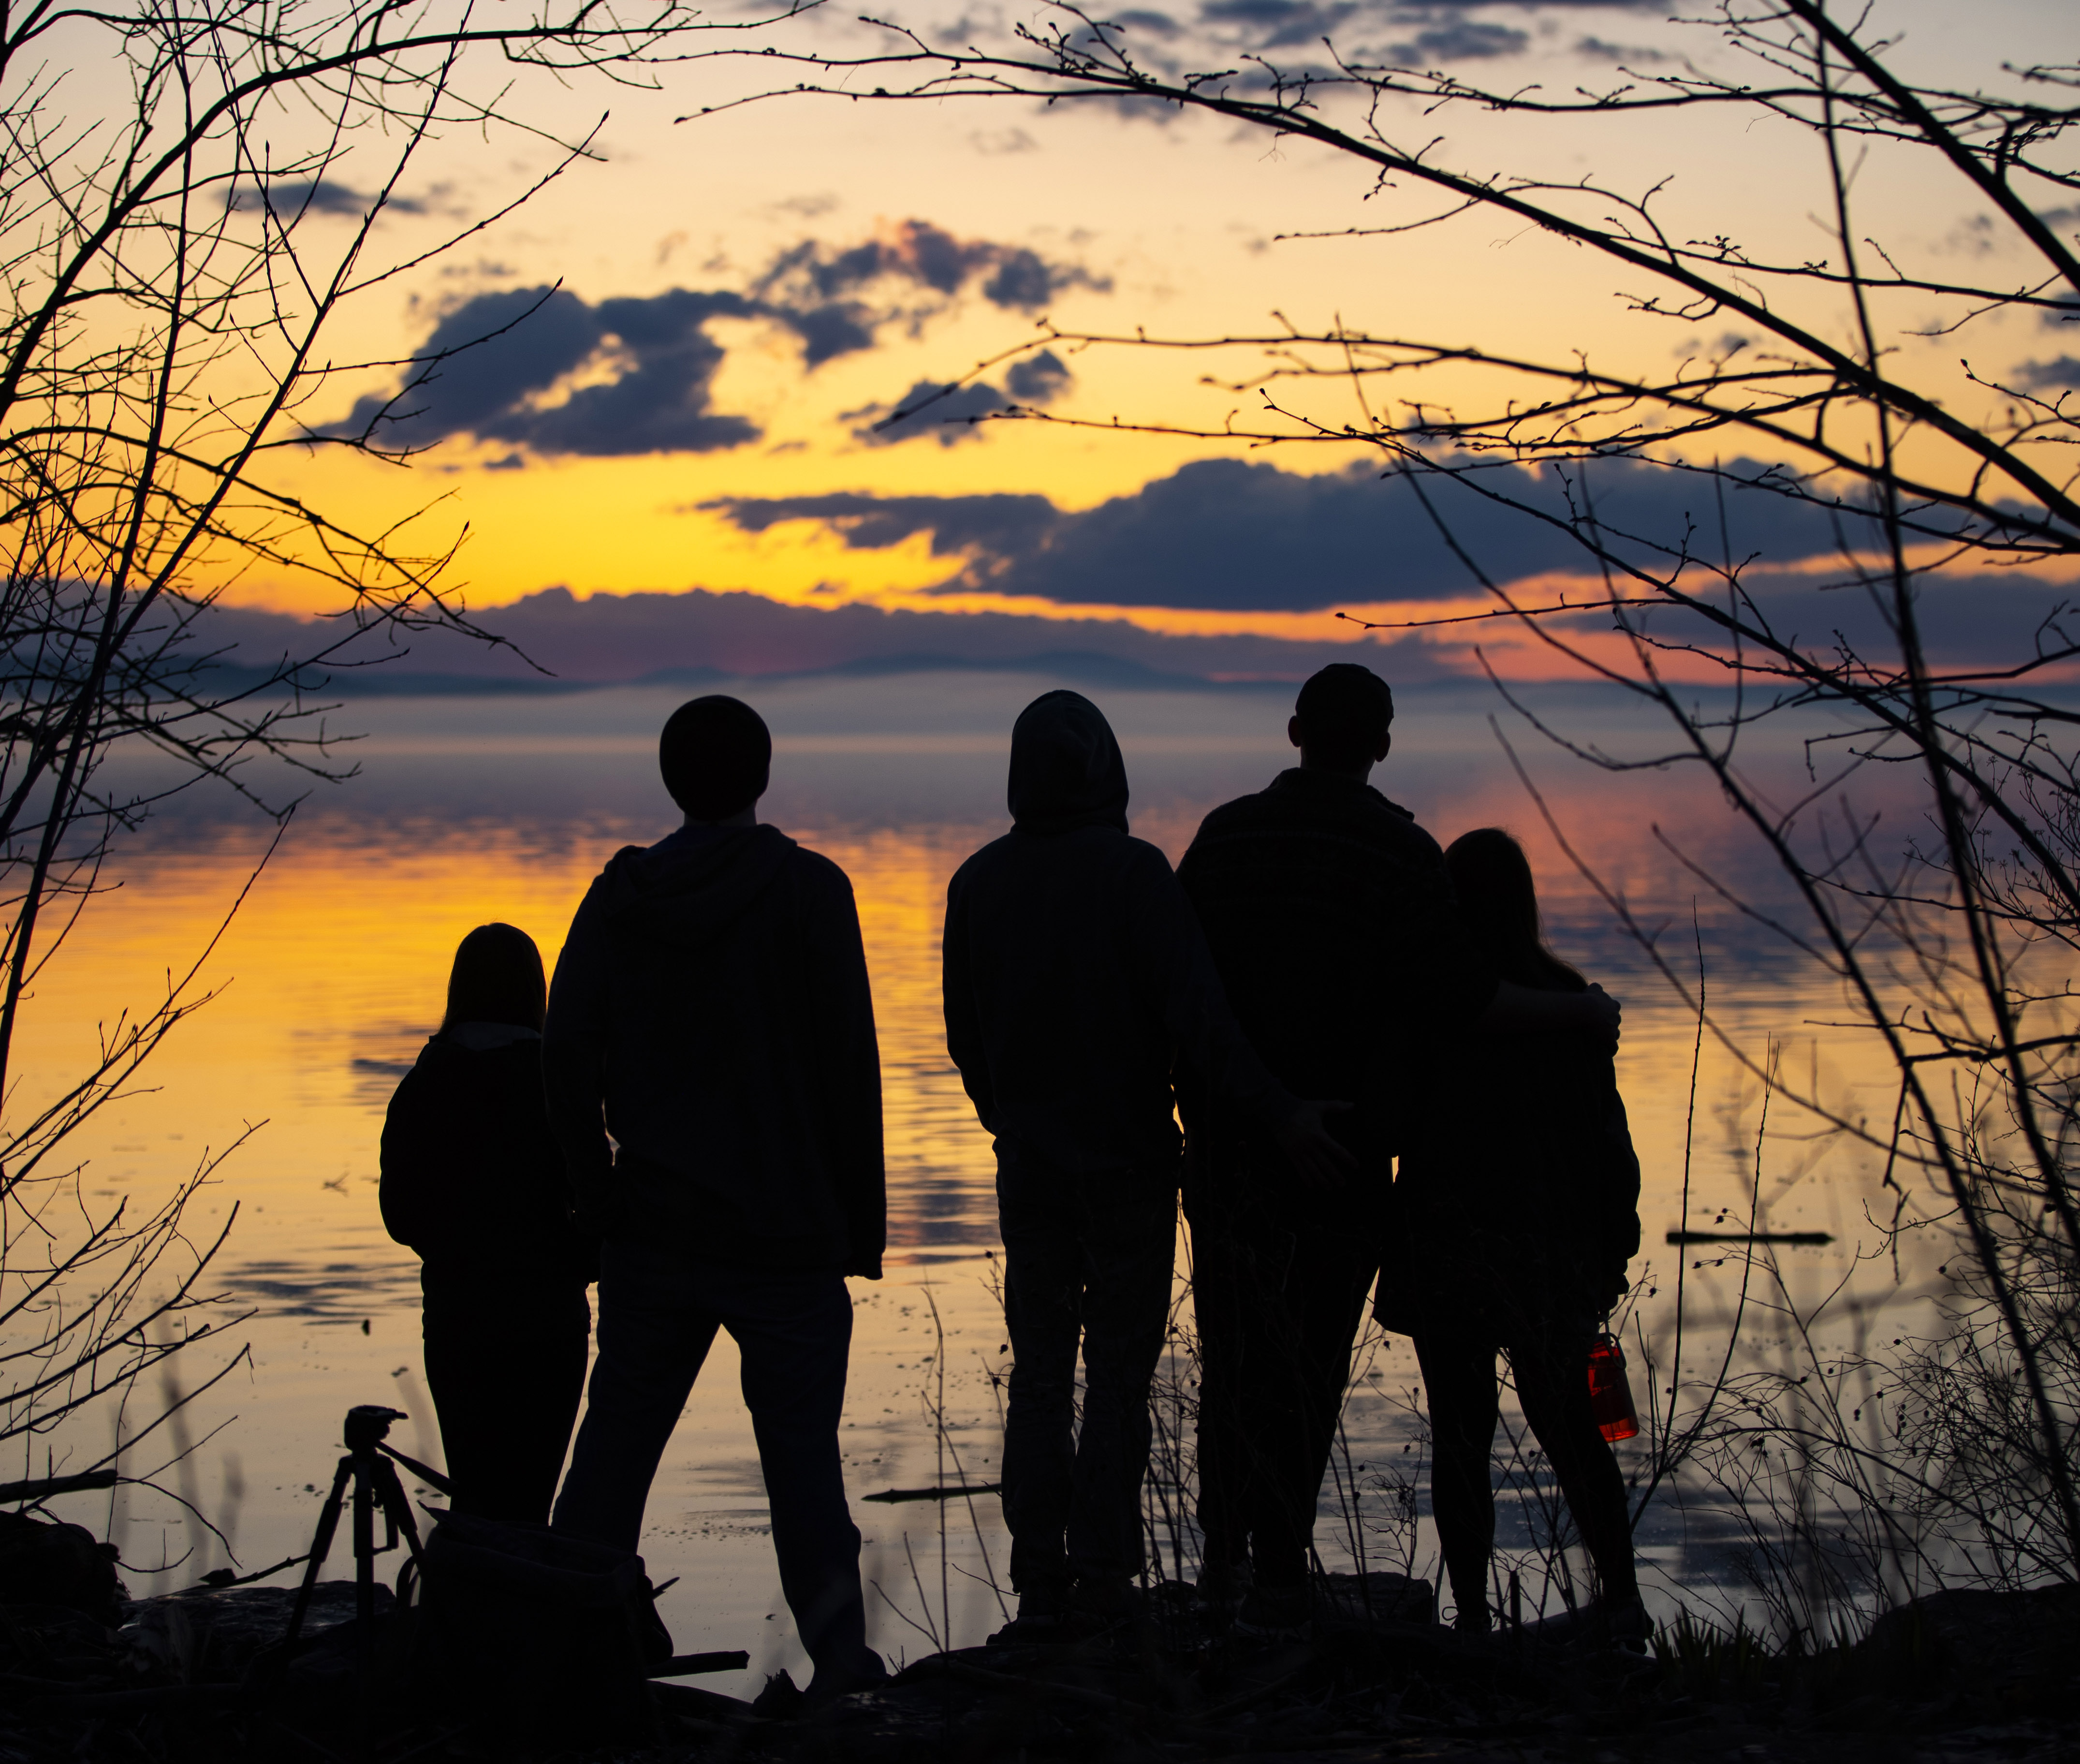 Students watching the sunset at Oakledge Park in Burlington, Vermont